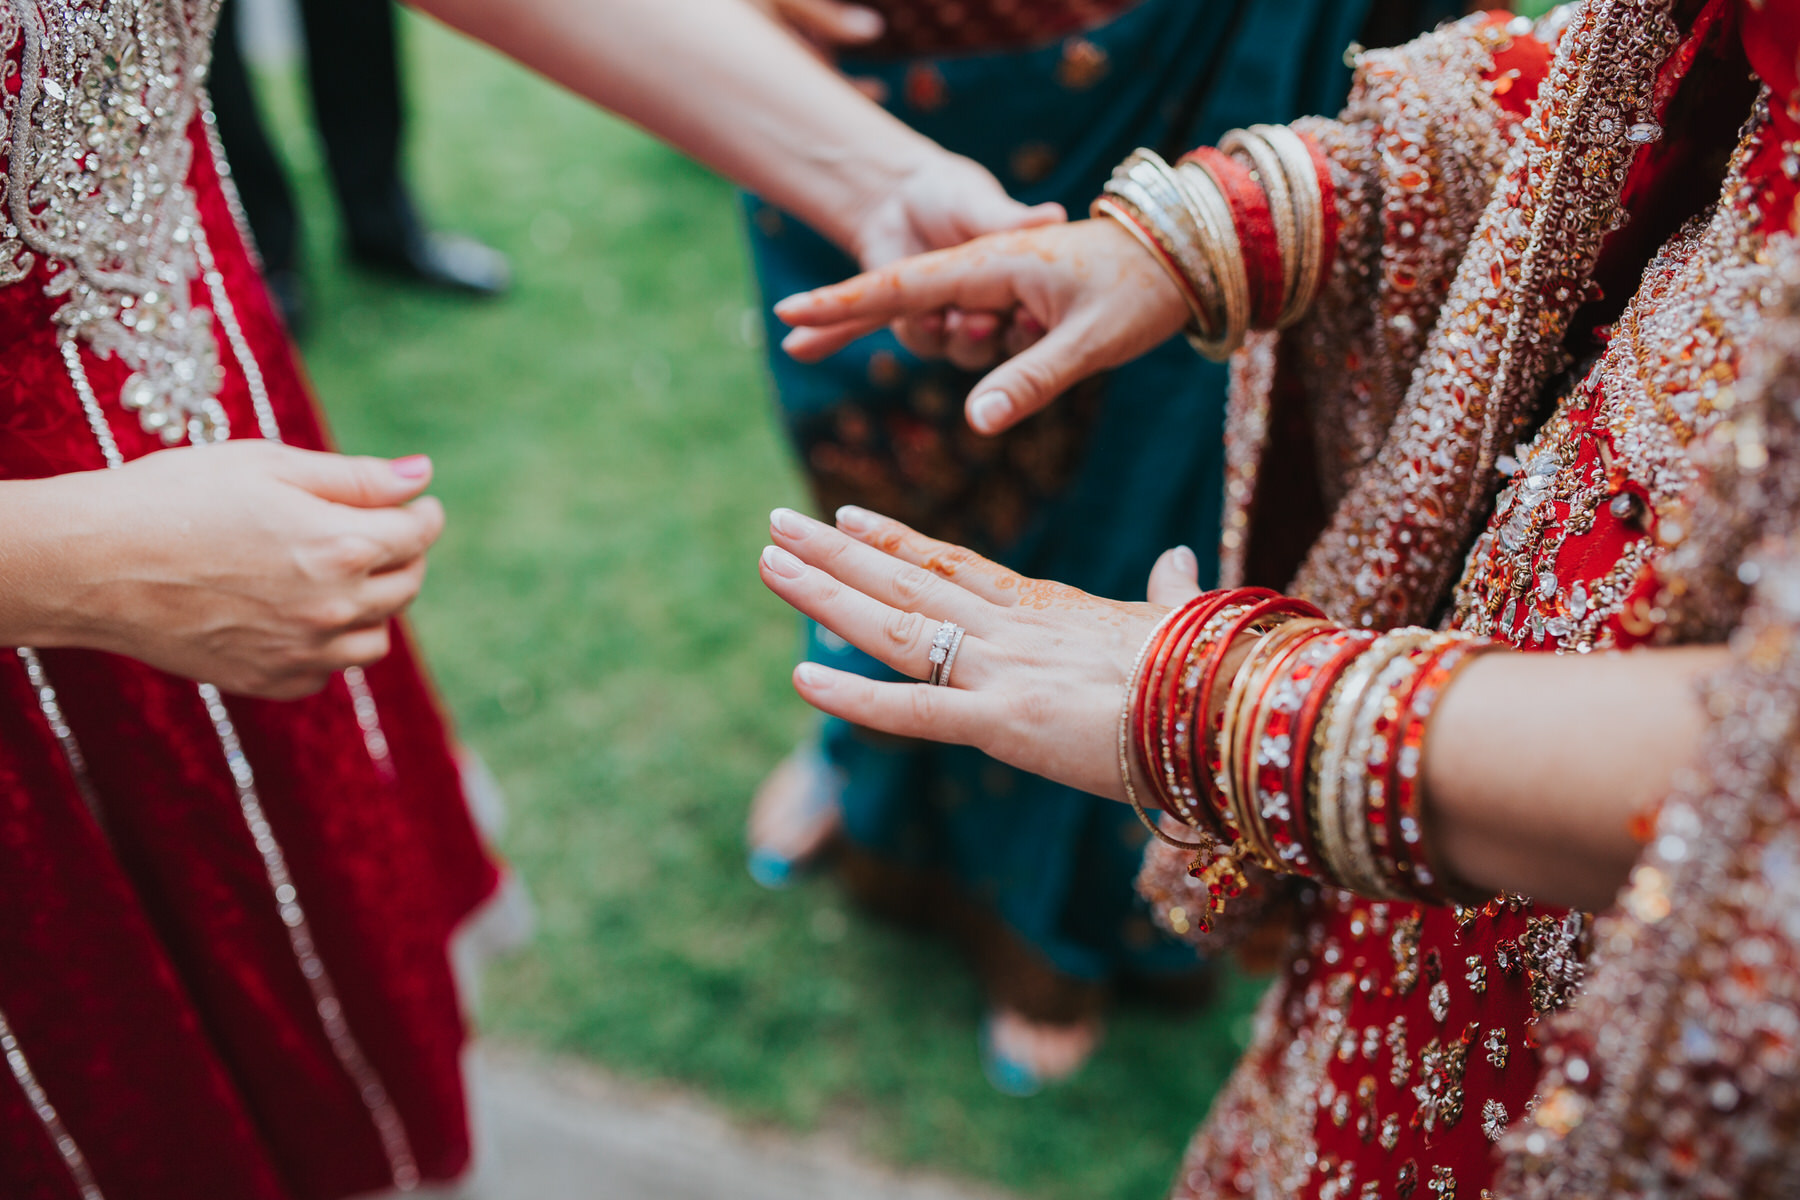 137-Anglo-Asian-bride-showing-henna-wedding-ring.jpg